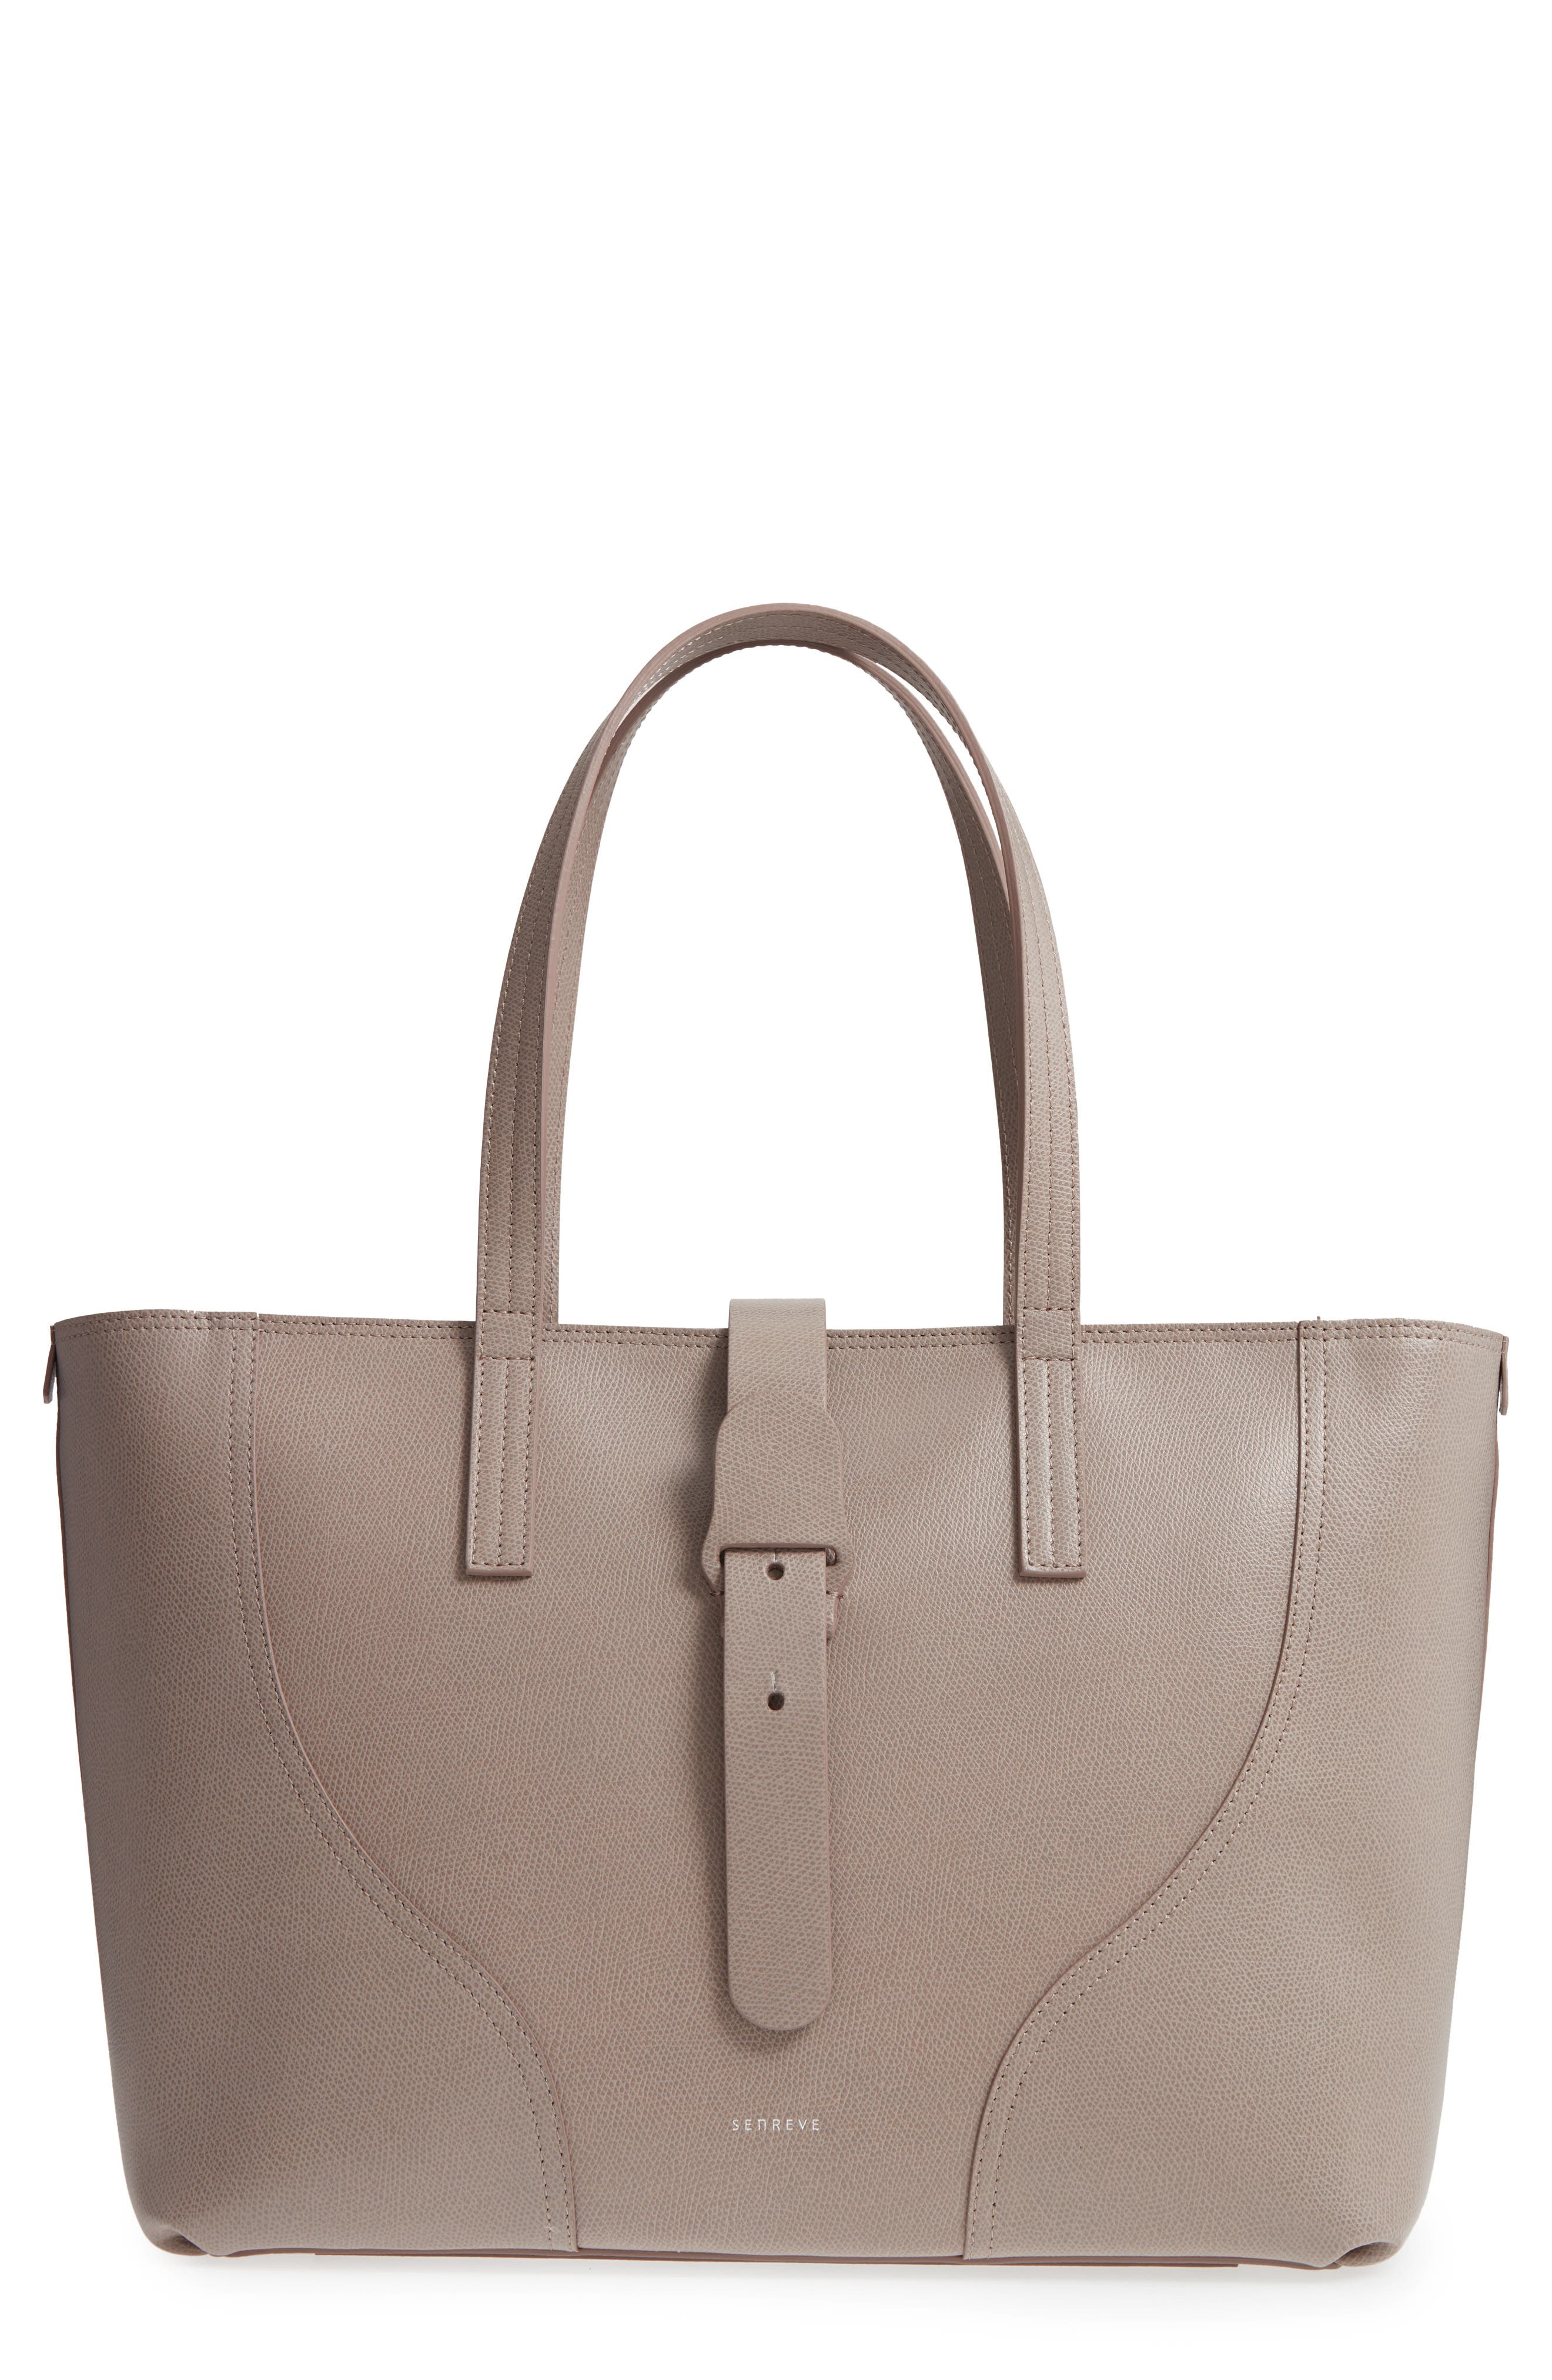 Voya Pebbled Leather Tote,                             Main thumbnail 1, color,                             SAND